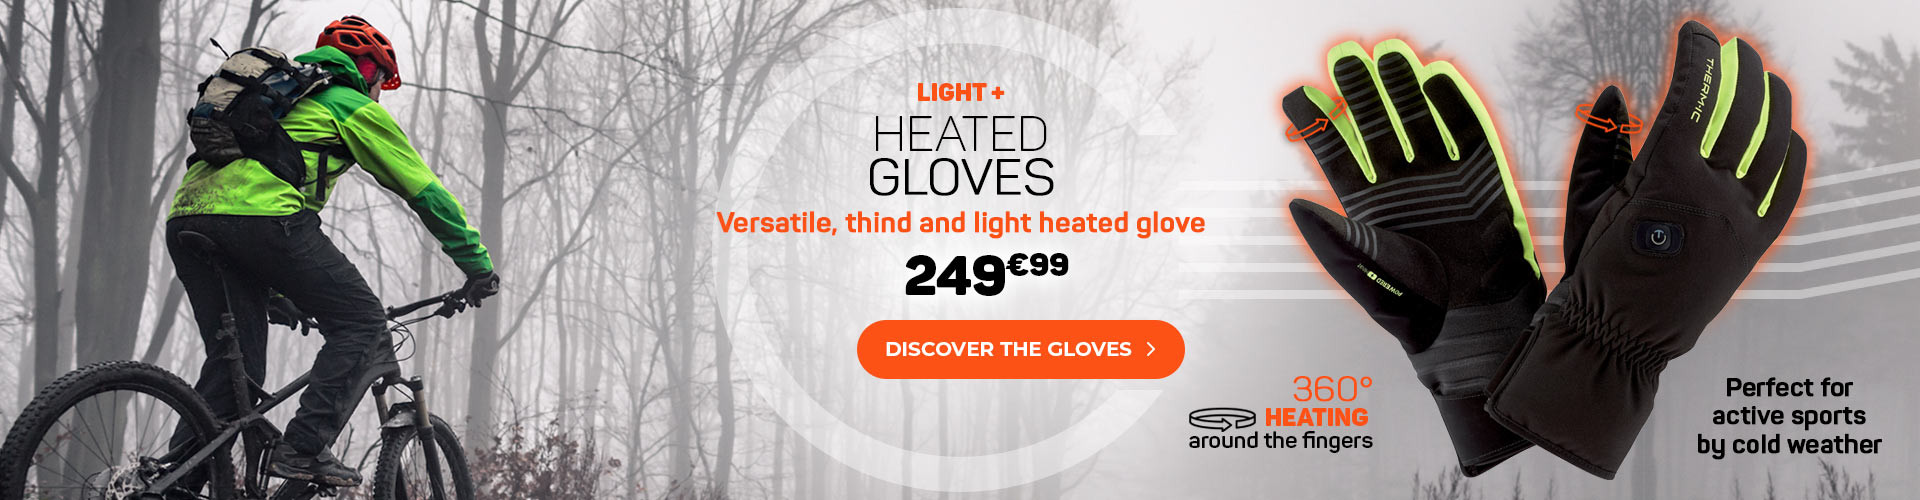 Dicover the new heated gloves Light +, versatile and thin, perfect for active sports!